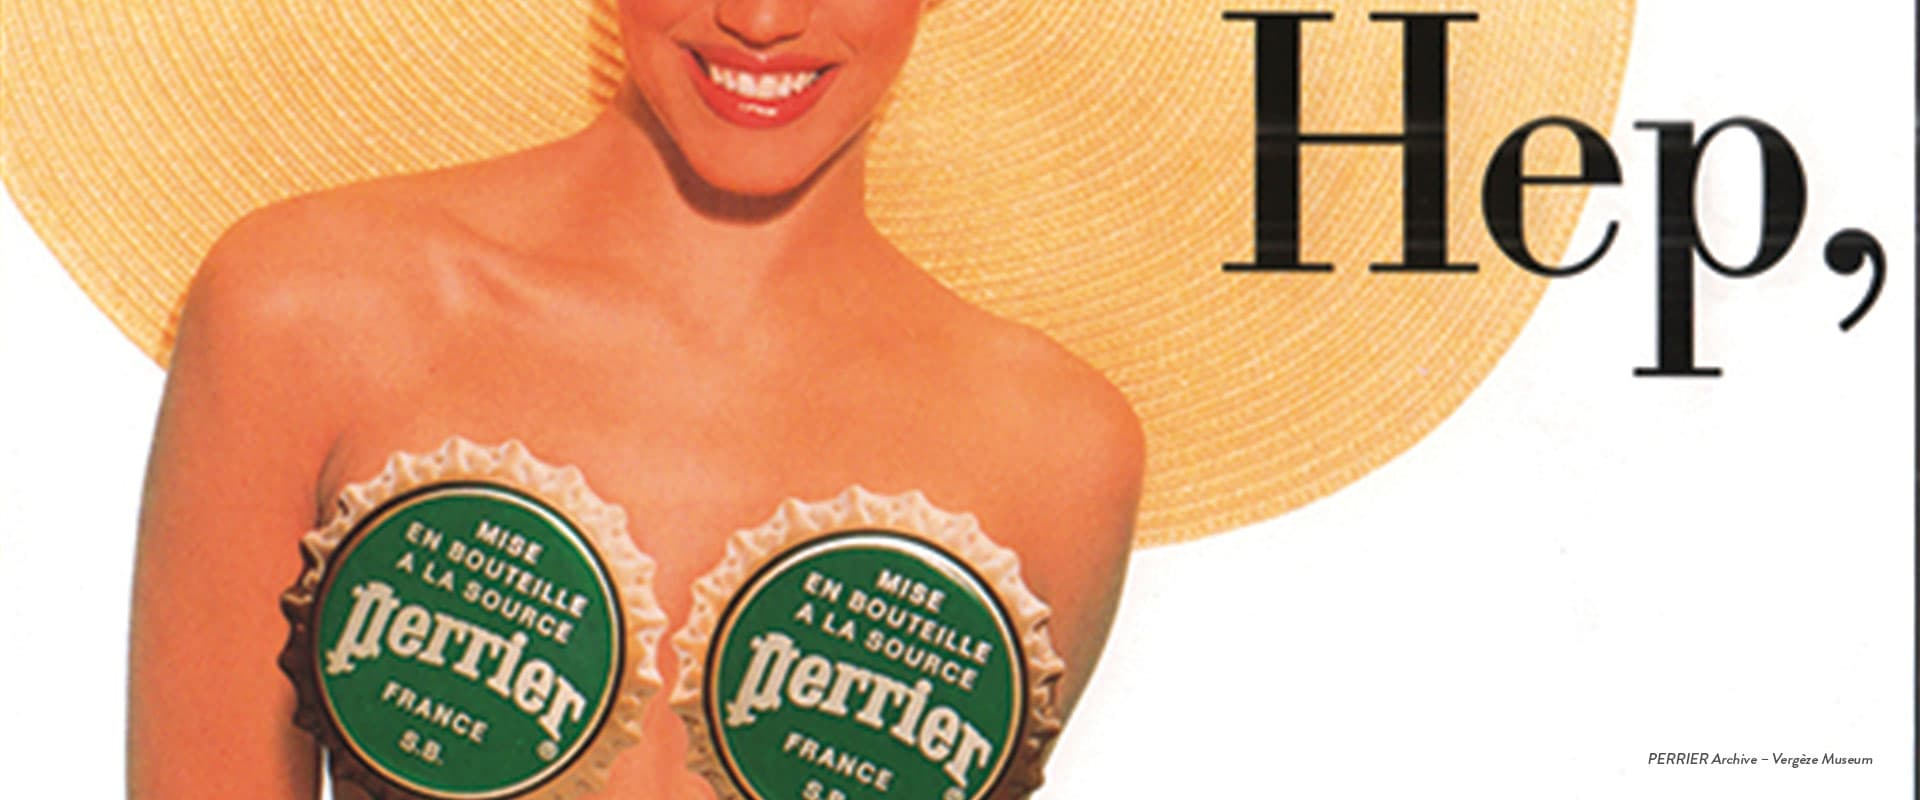 So Sexy. So PERRIER